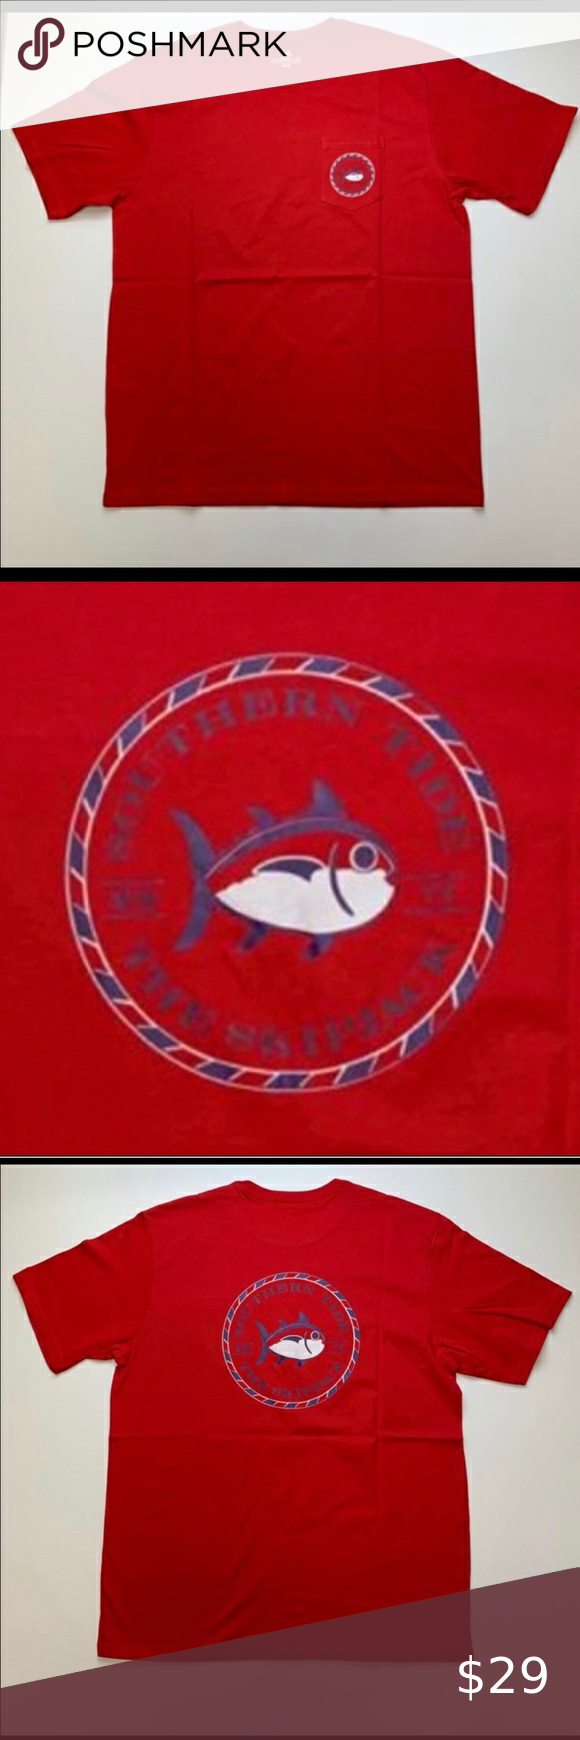 Southern Tide Tee In 2020 Southern Tide Tees Print Logo